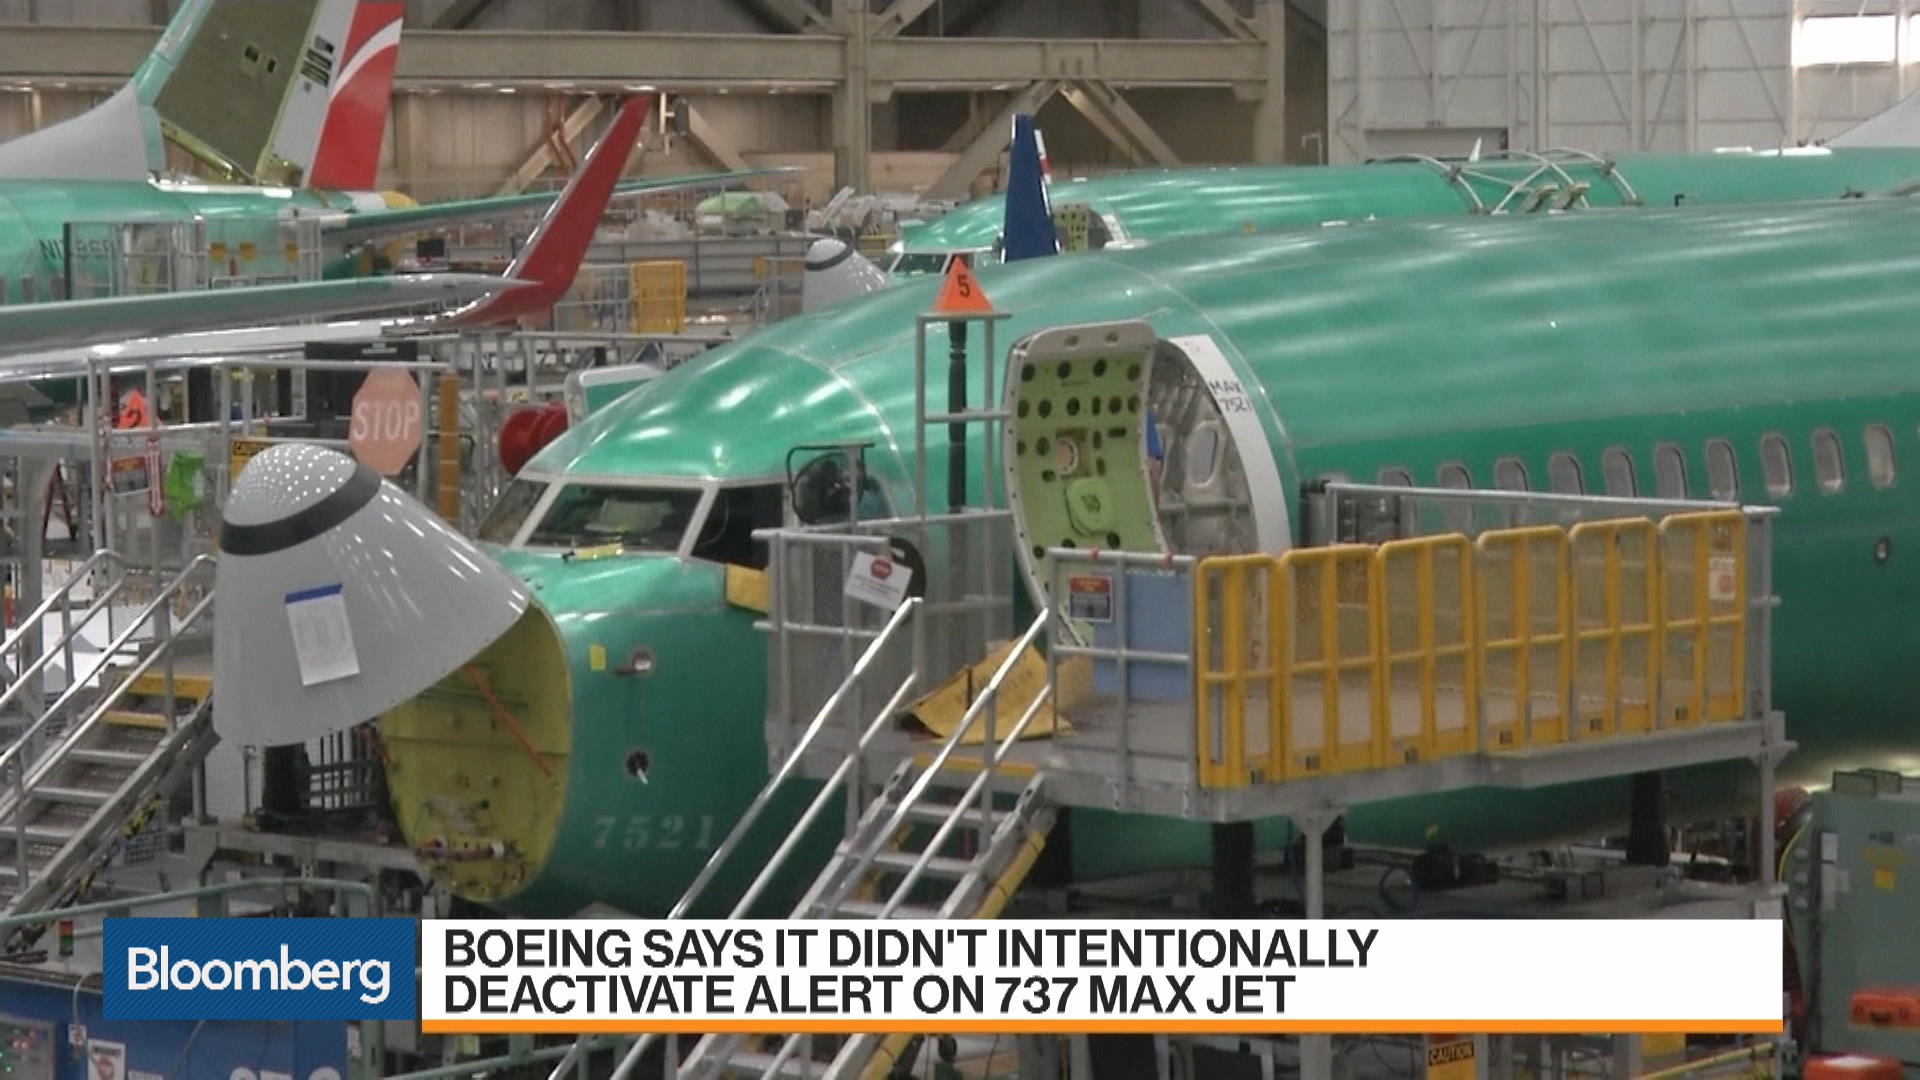 Boeing Says It Didn't Intentionally Deactivate Alert on 737